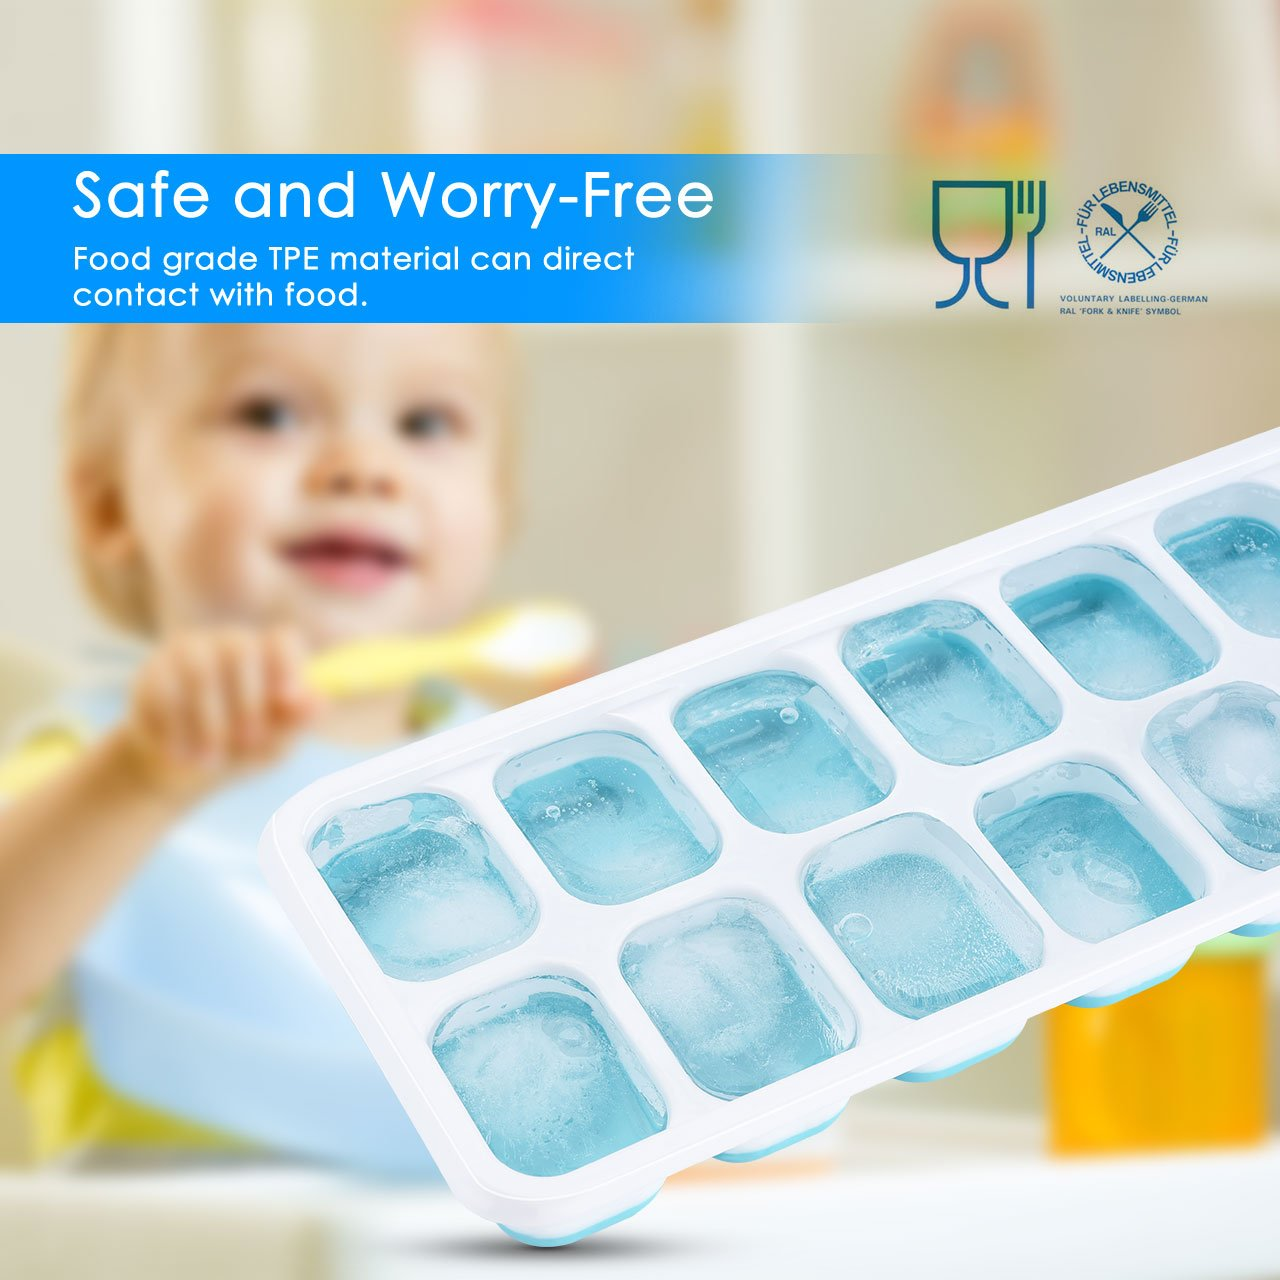 OMorc Ice Cube Trays 4 Pack, Easy-Release Silicone and Flexible 14-Ice Trays with Spill-Resistant Removable Lid, LFGB Certified & BPA Free, Stackable by OMORC (Image #3)